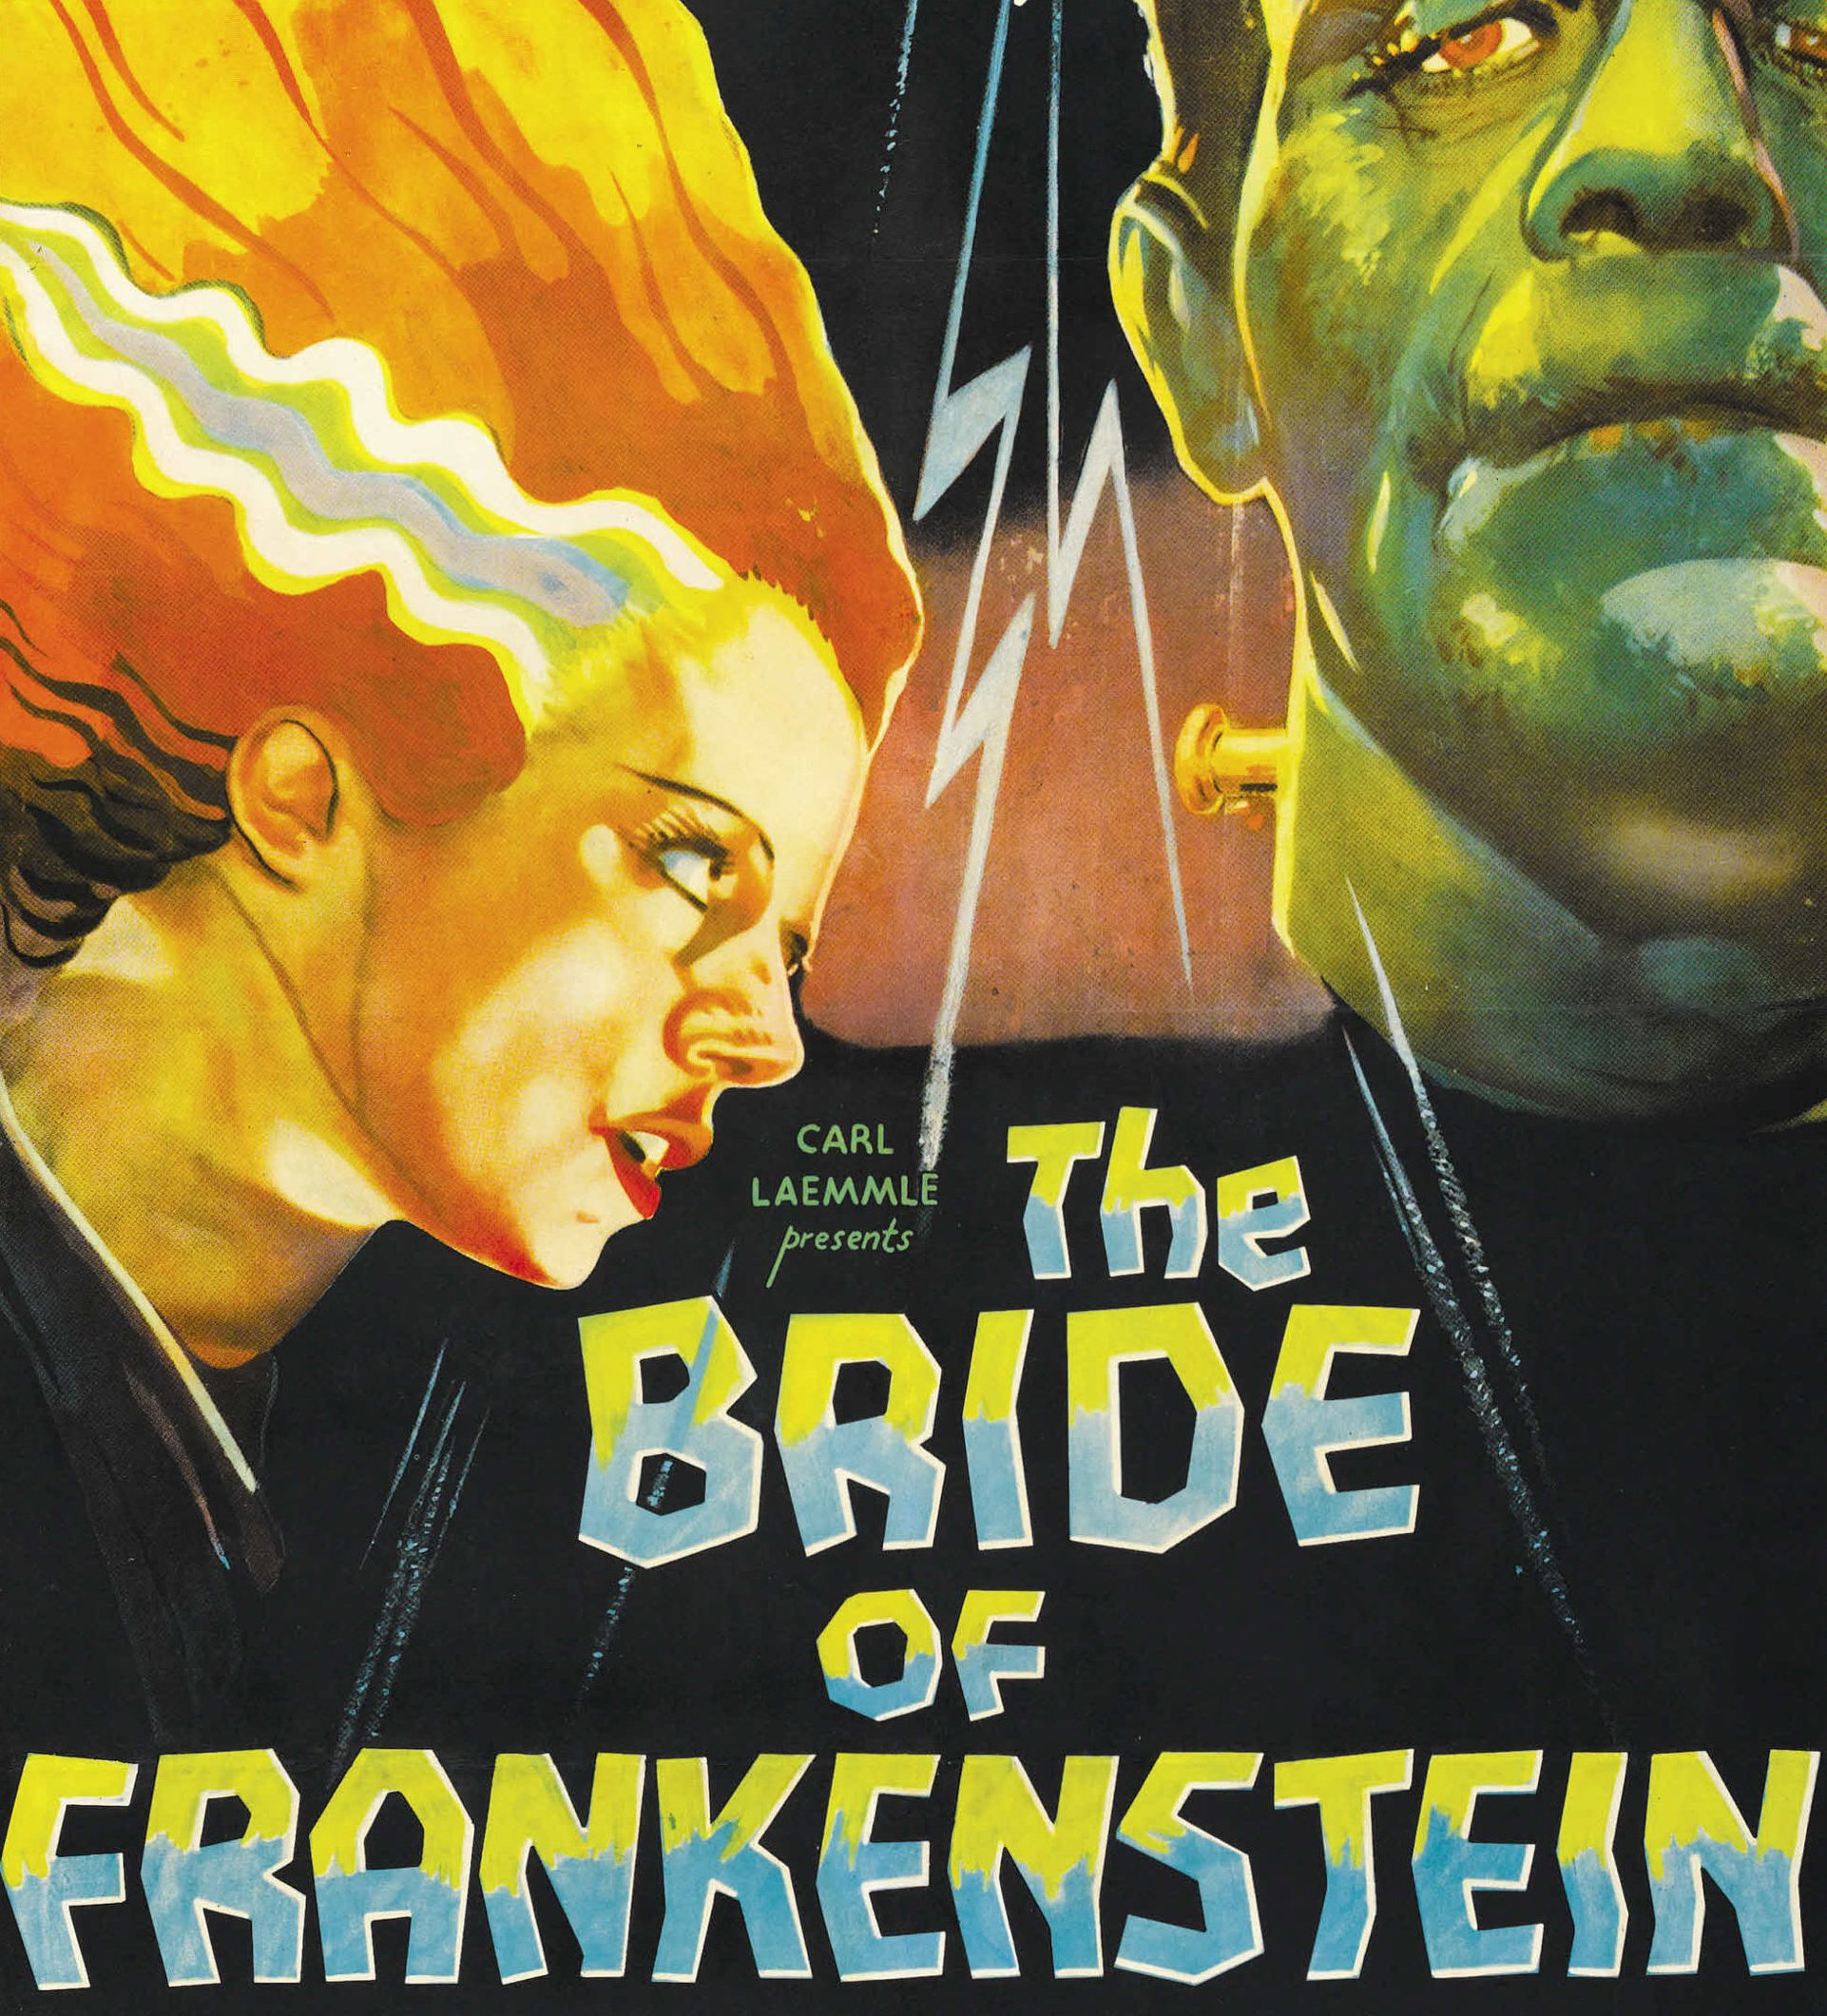 The Bride of Frankenstein 1935 poster e1583229883198 20 Horror Sequels That Are Actually Better Than The Original